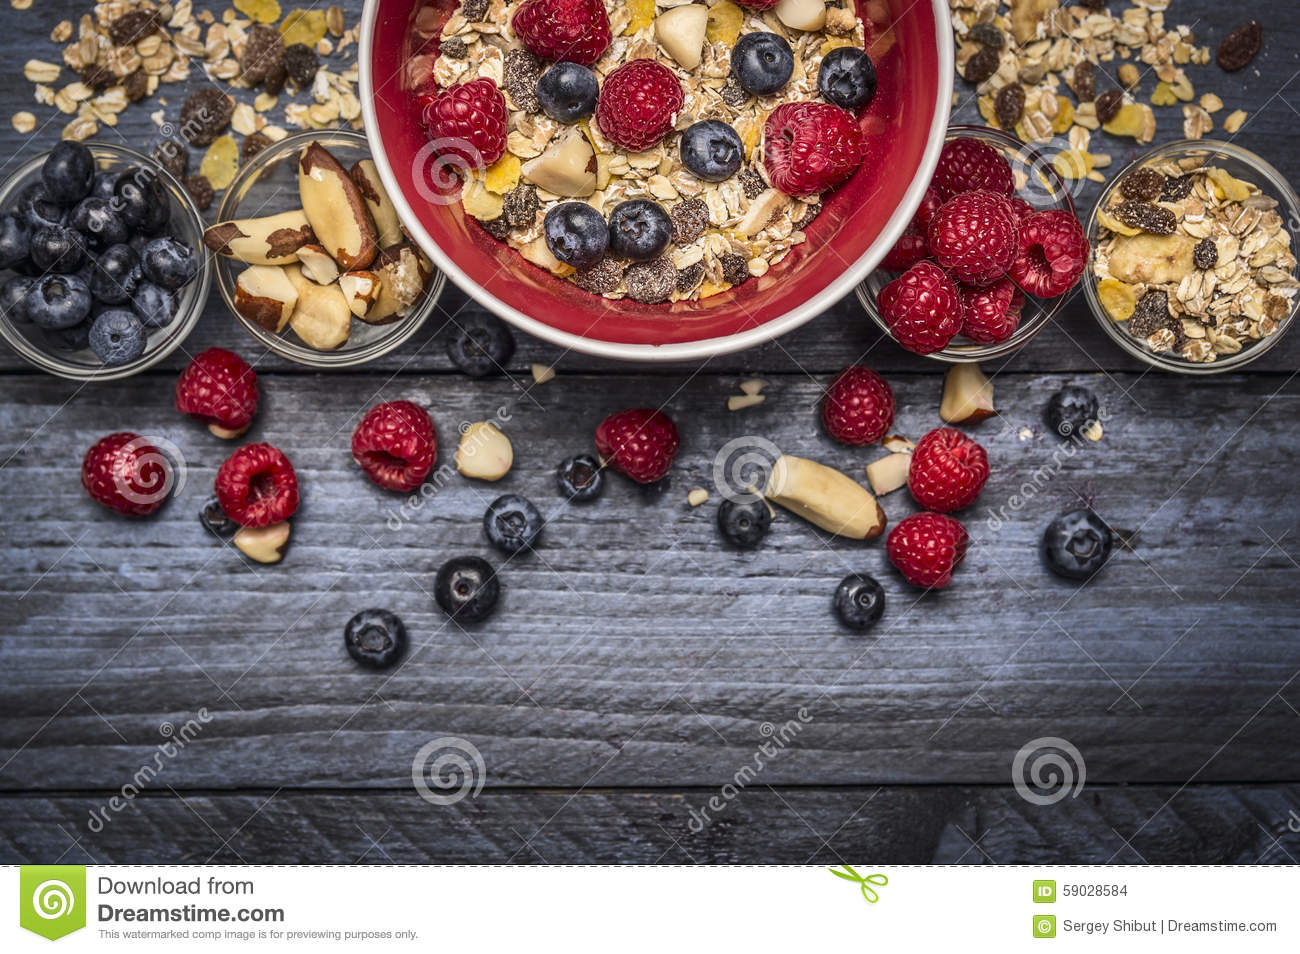 Download Red Bowl With Muesli, Nuts And Fresh Berries On Blue Rustic Background, Top View, Border Stock Photo - Image of berries, crunchy: 59028584